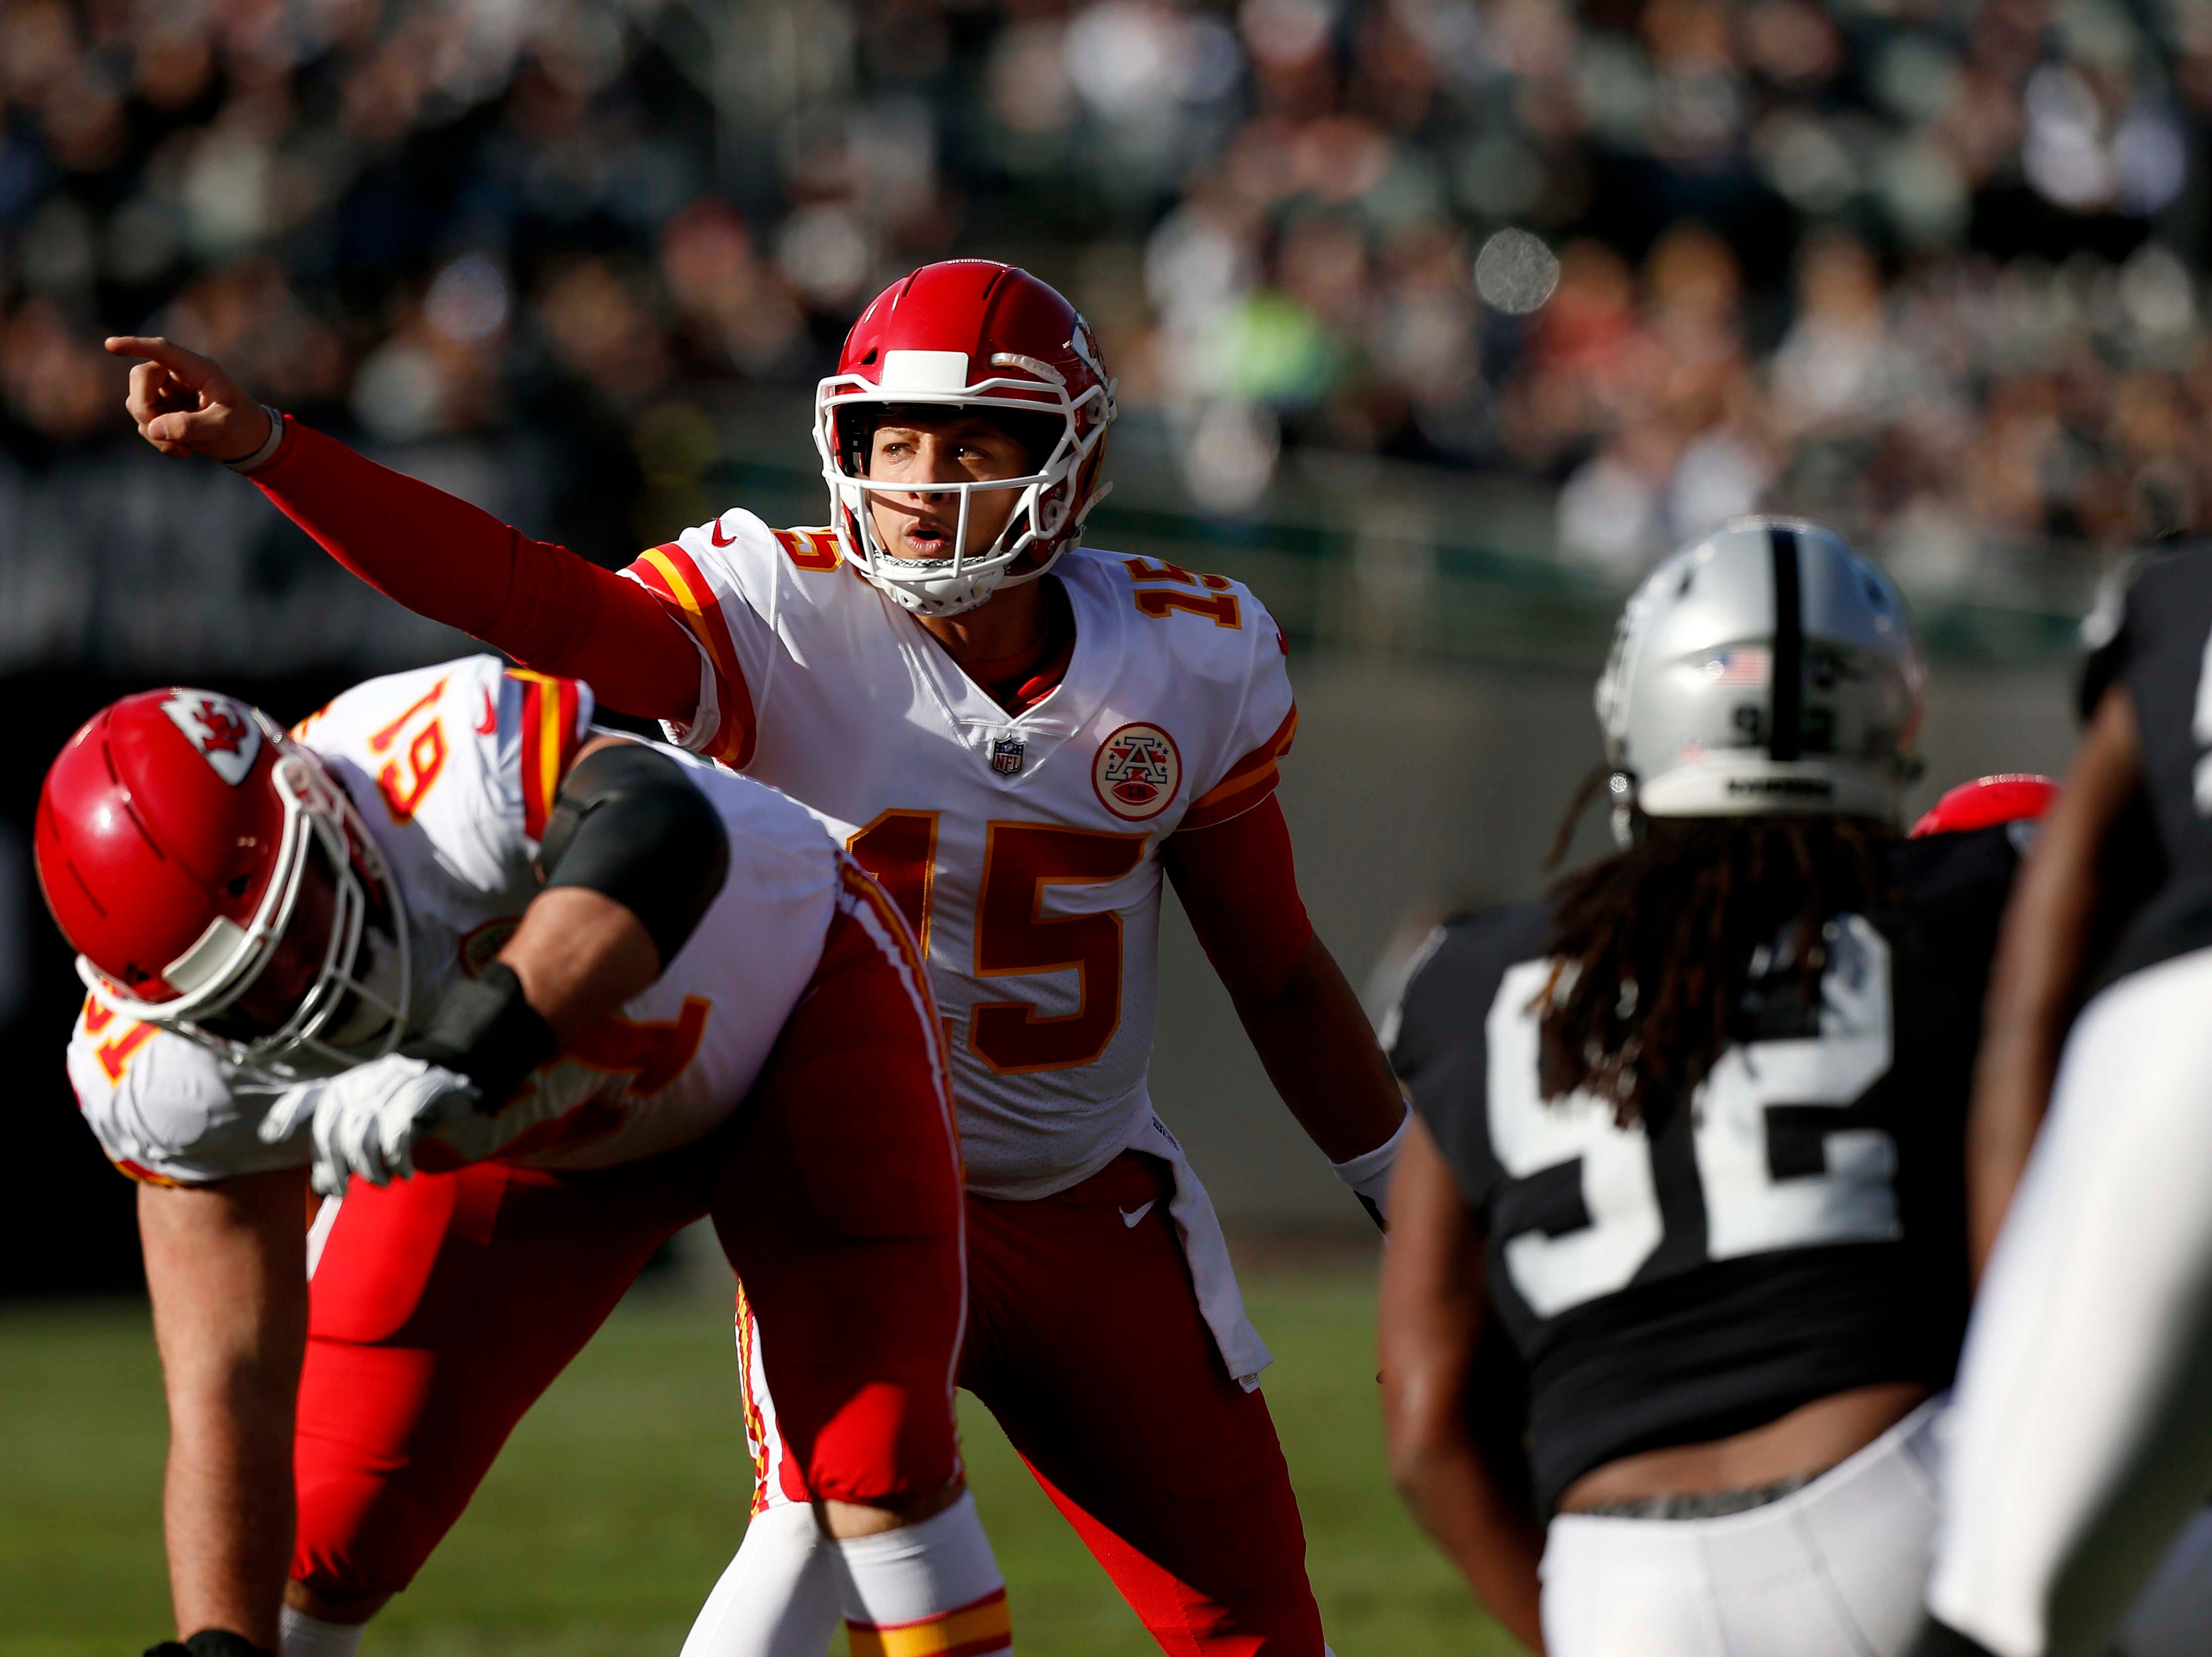 Chiefs quarterback Patrick Mahomes directs his team before taking a snap against the Raiders.